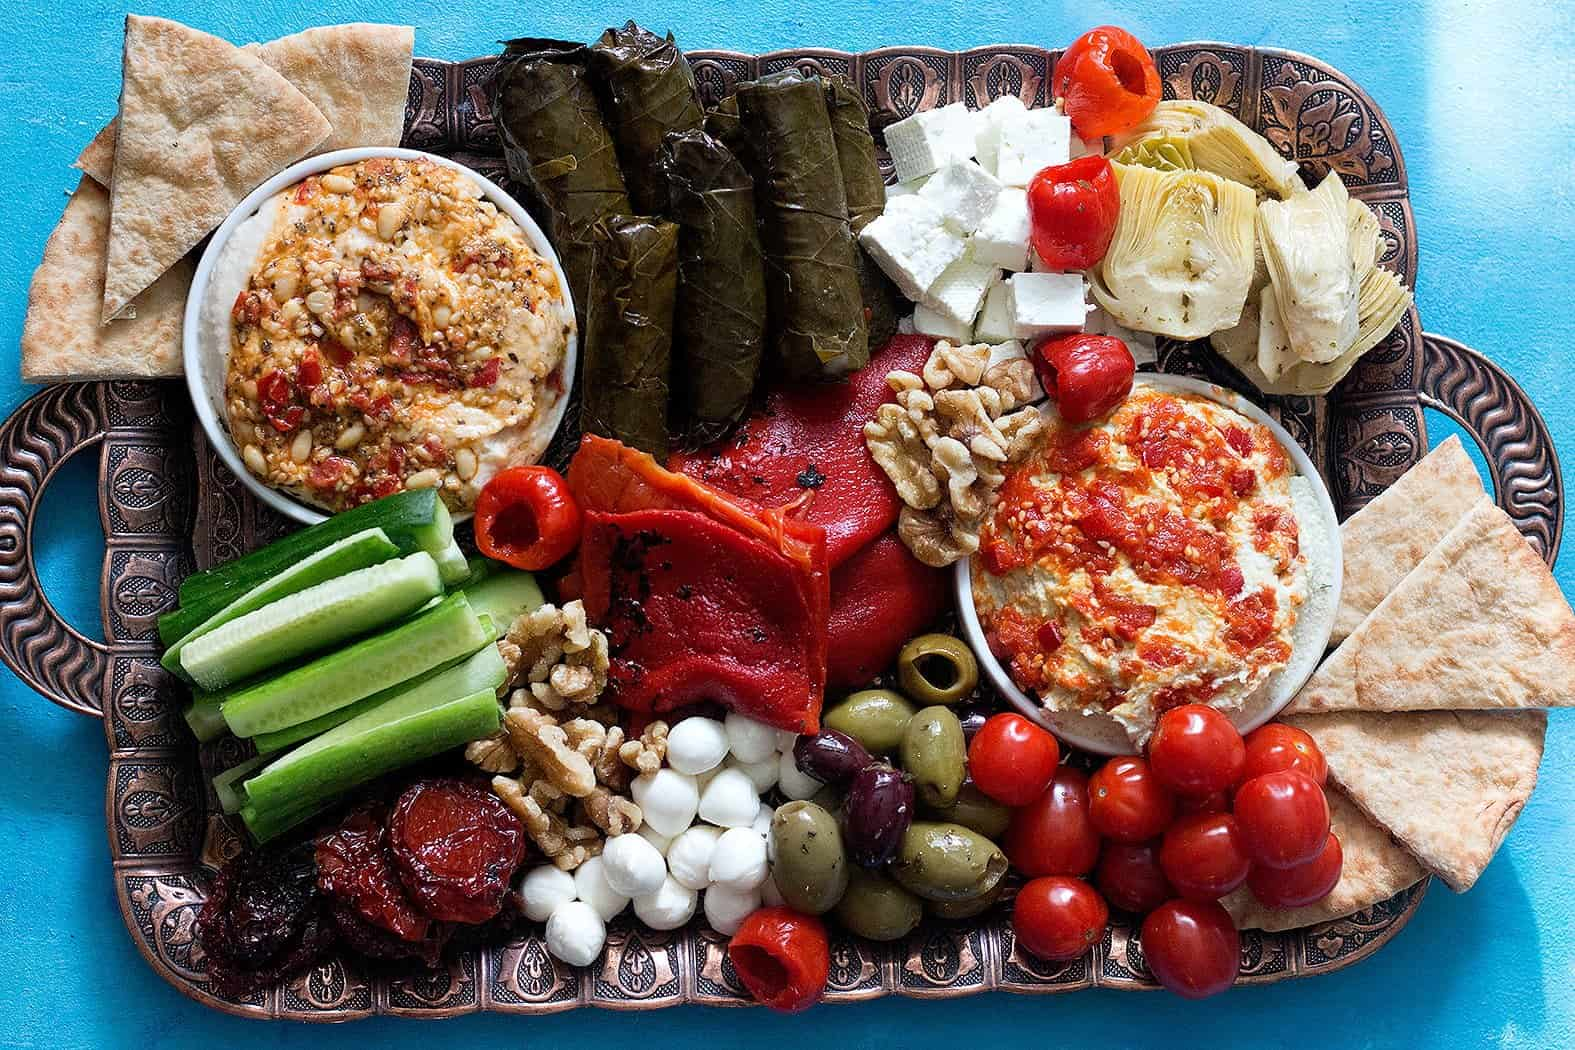 Add stuffed grape leaves, sun dried tomatoes, artichokes and olives to the Lebanese mezze platter.